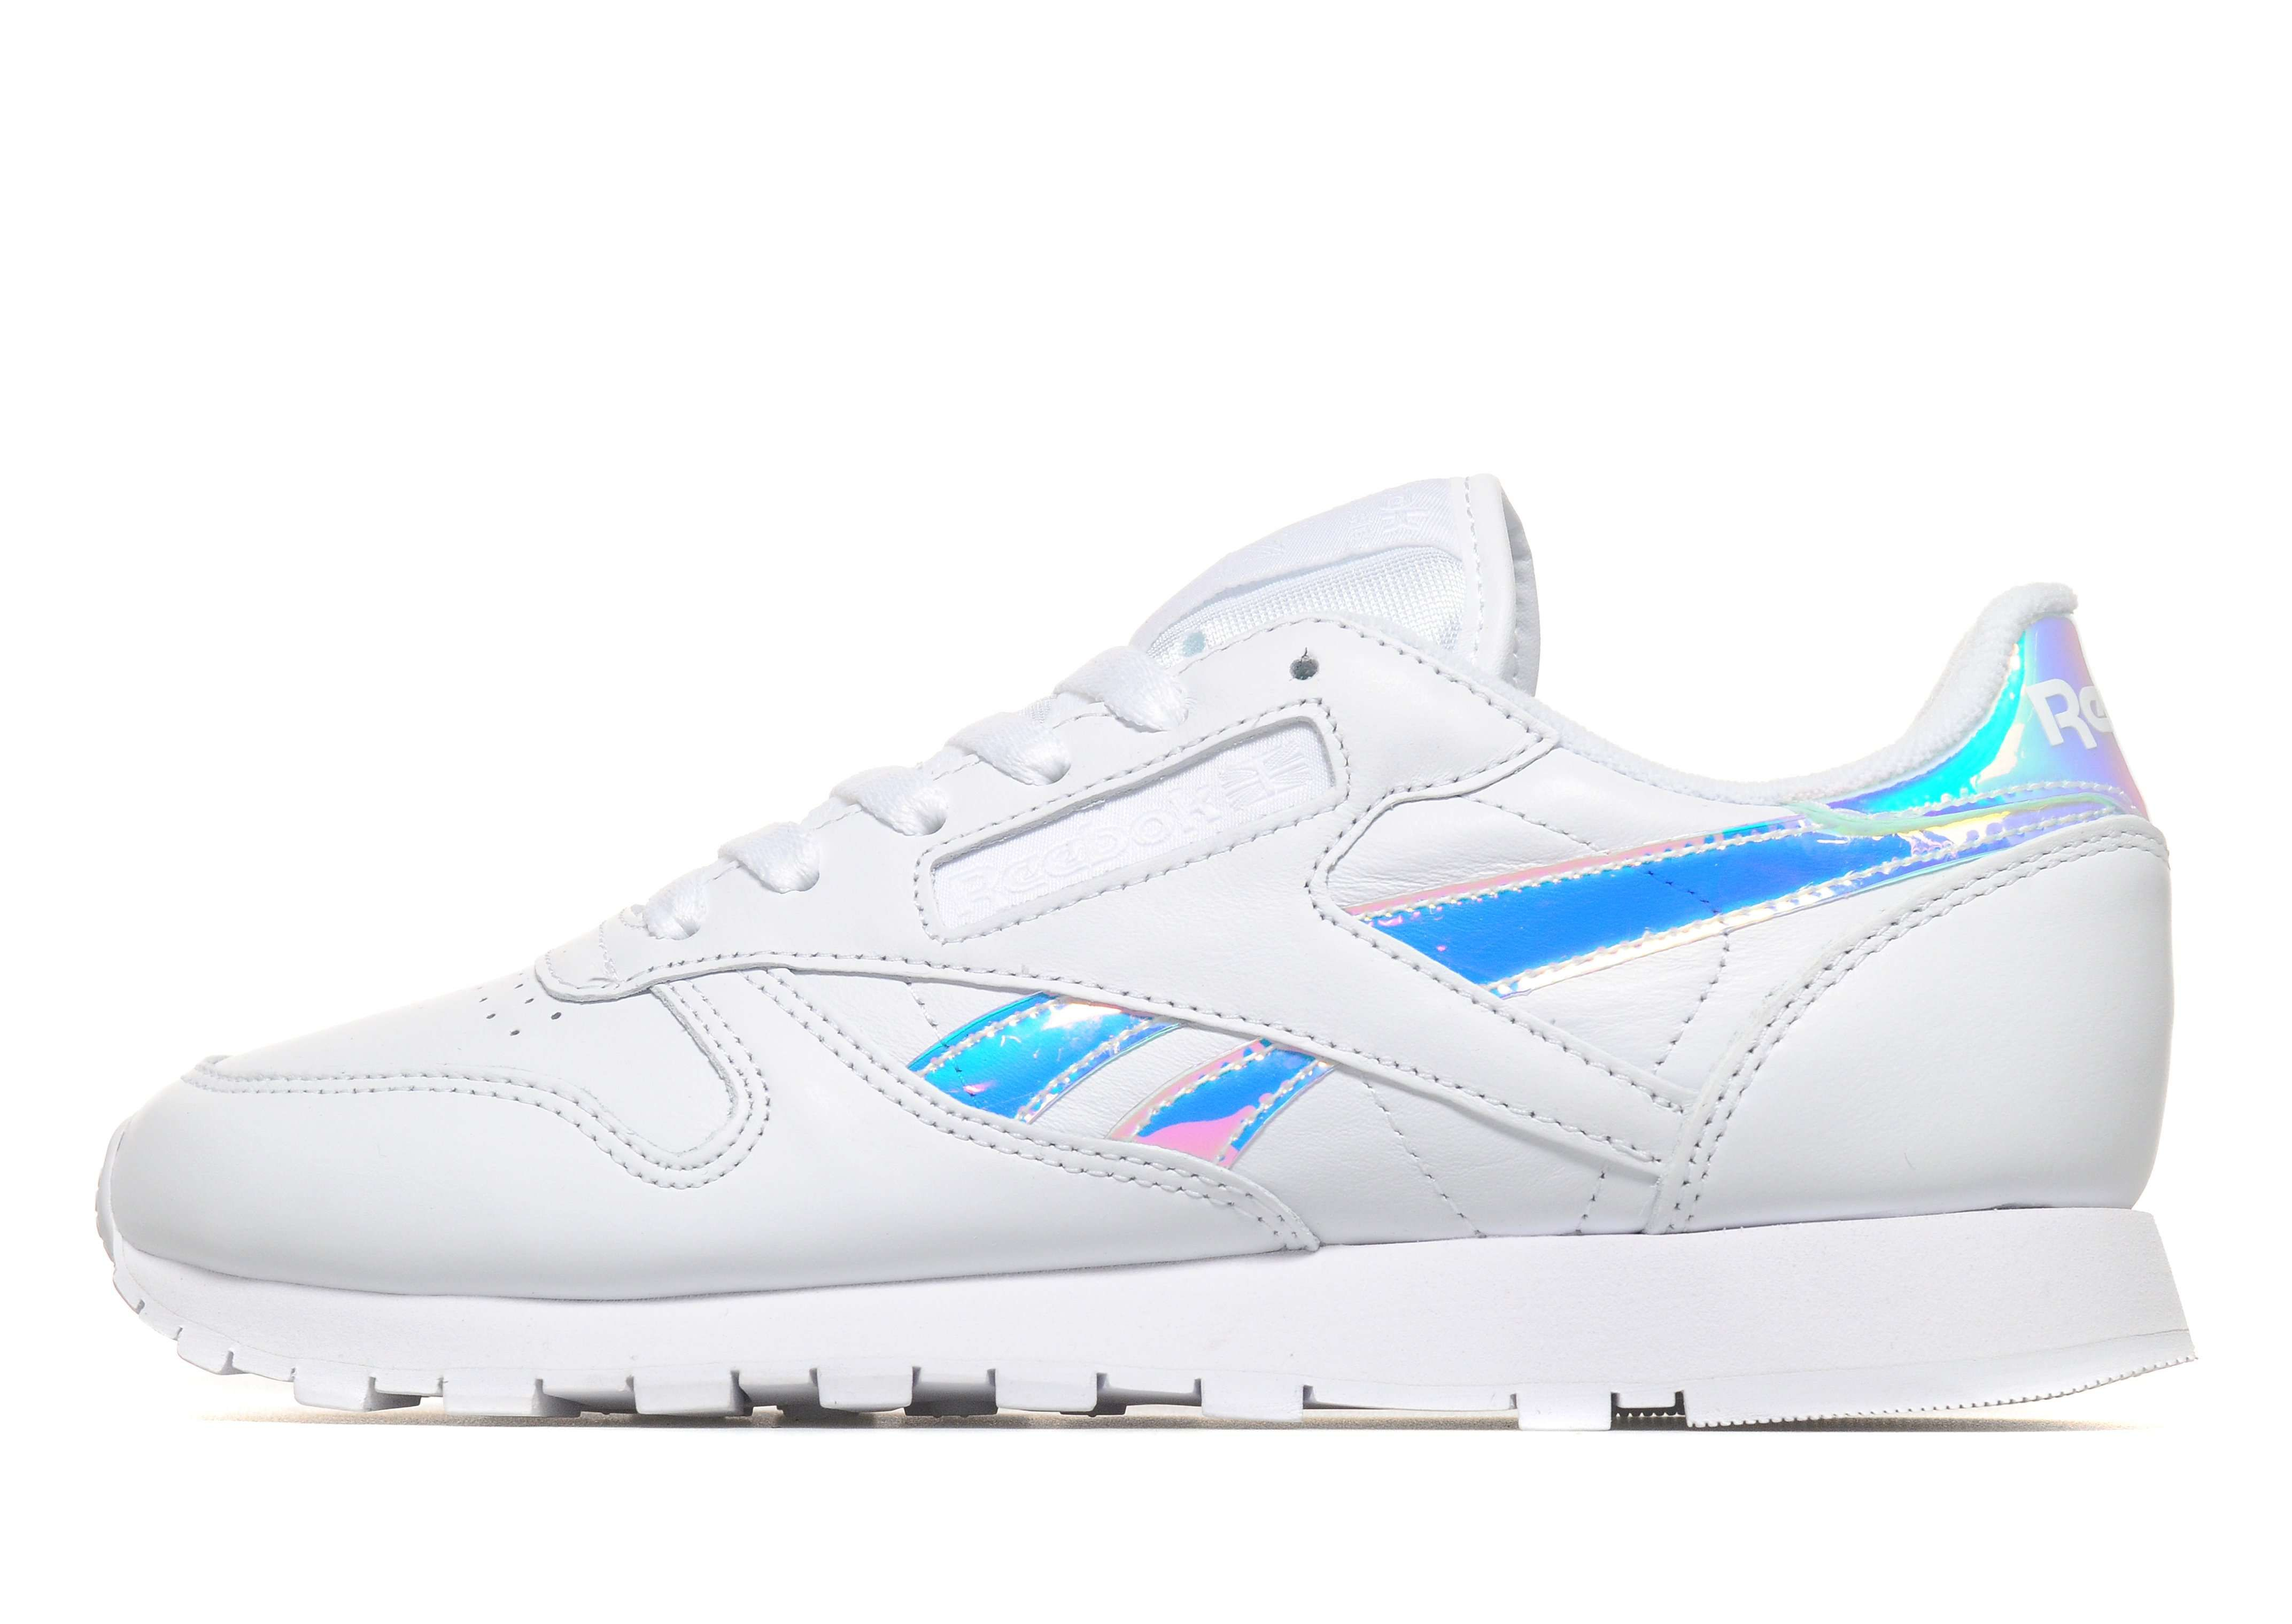 Classic I Iridescent Leather Reebok Women'sJd Sports Clothes wPk80OXNnZ